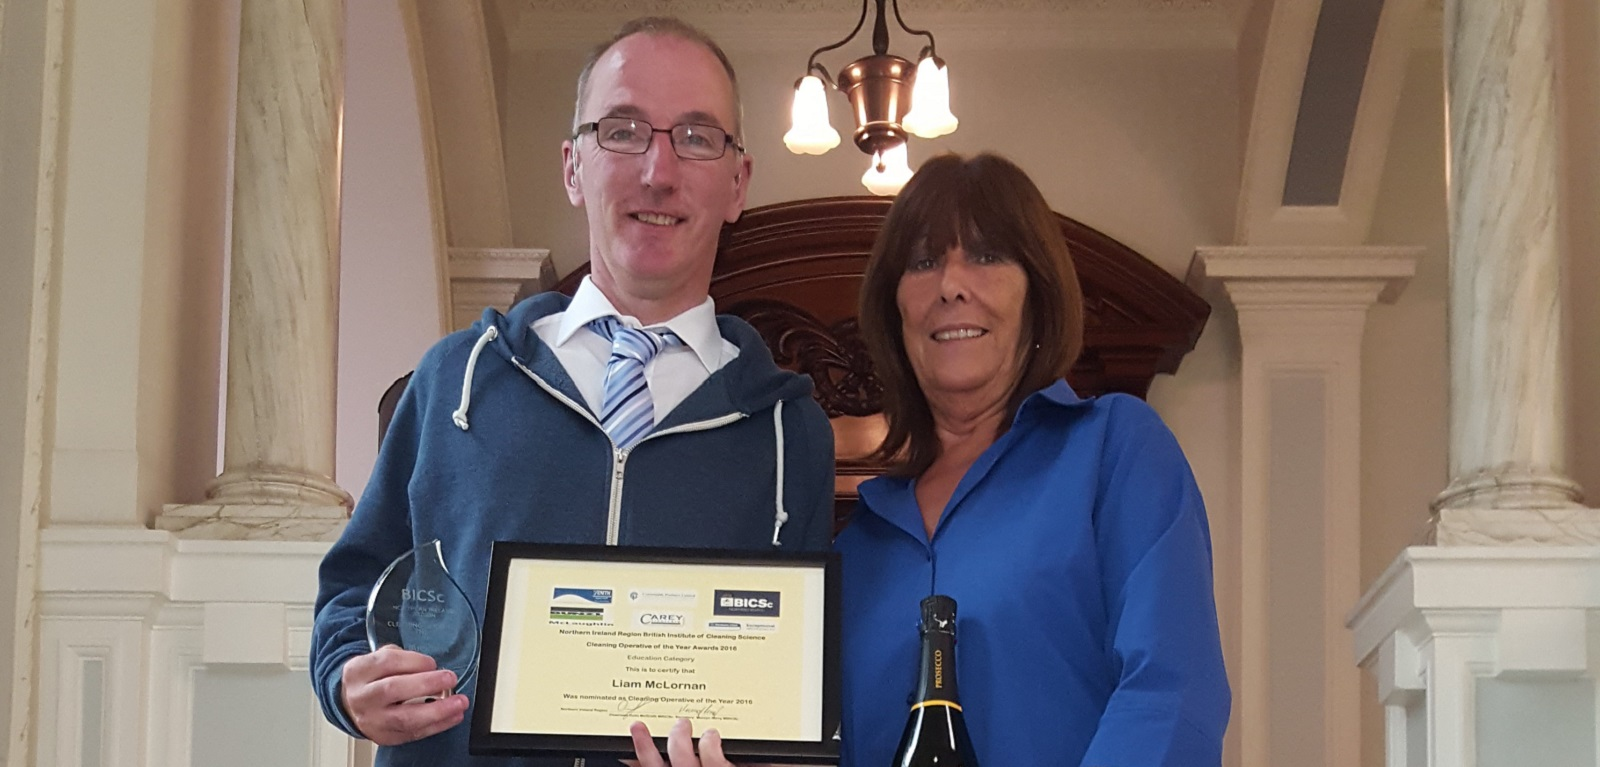 Queens Cleaner wins British Institute of Cleaning Science Award. Liam McLarnon(left) with his supervisor, Carol Clarke (right).